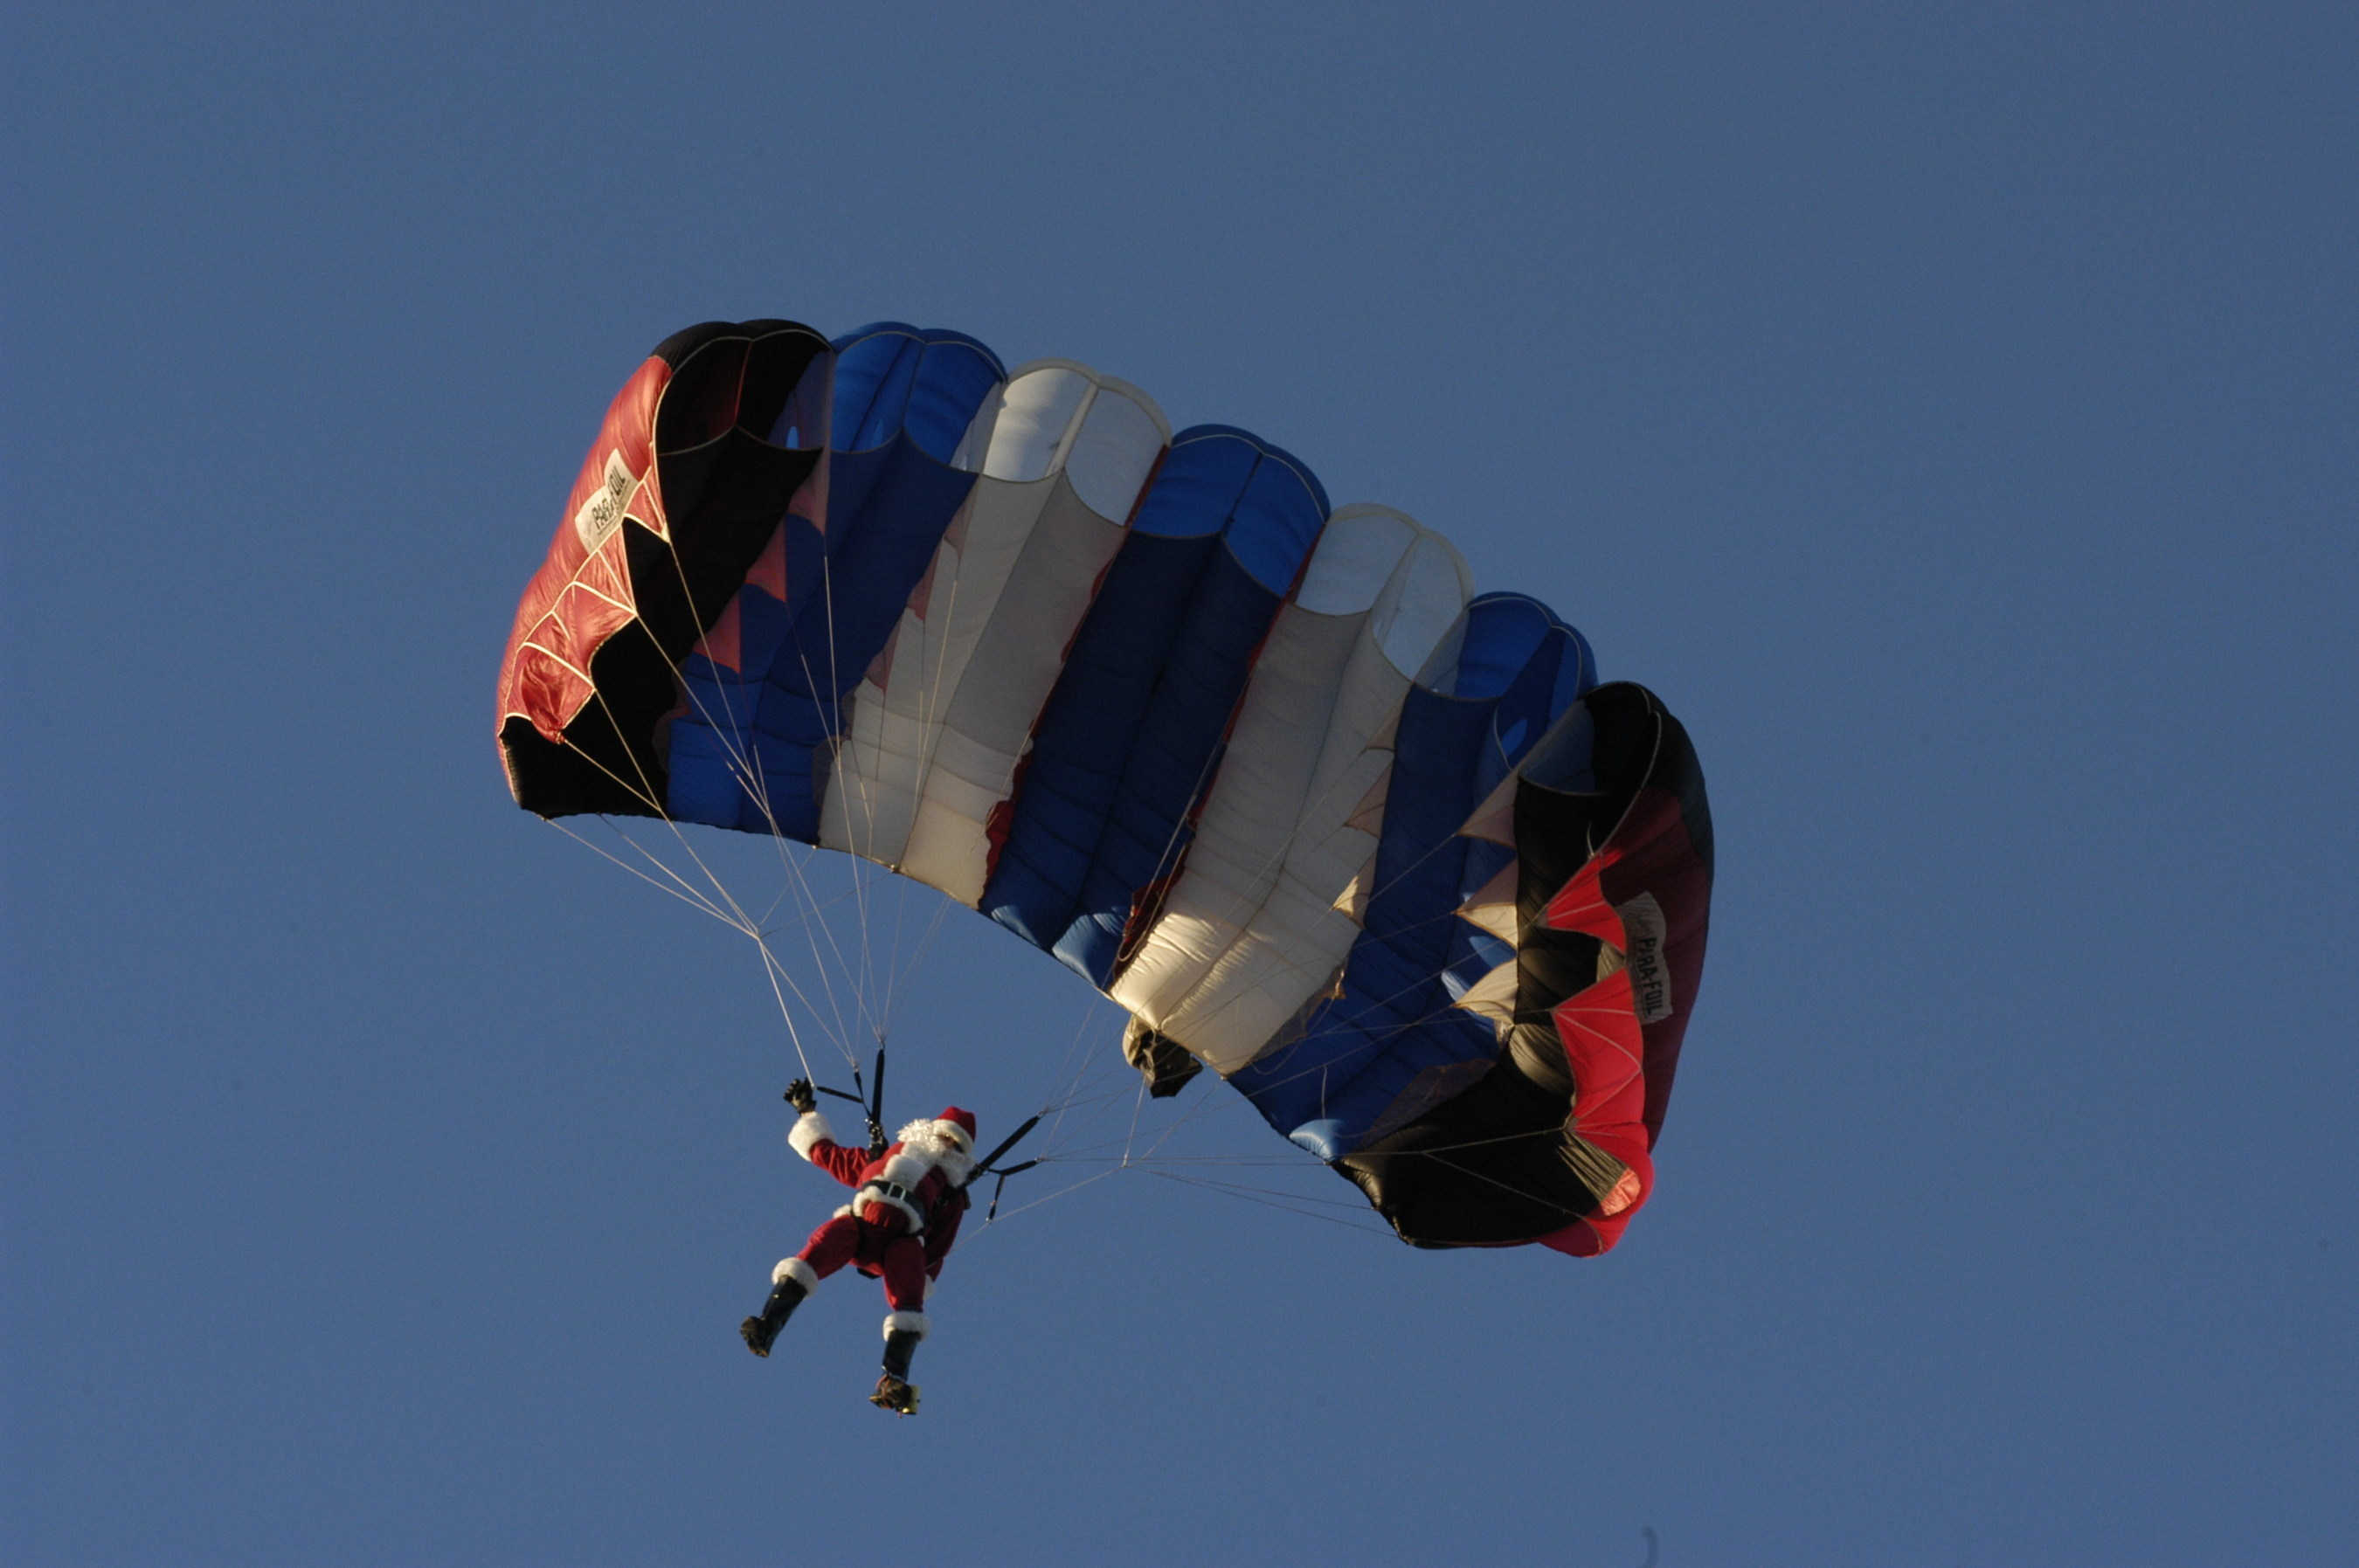 Santa will parachute in to kick off the holiday season for the opening of Moody Gardens Festival of Lights and ICE LAND: Ice Sculptures, Saturday, November 12